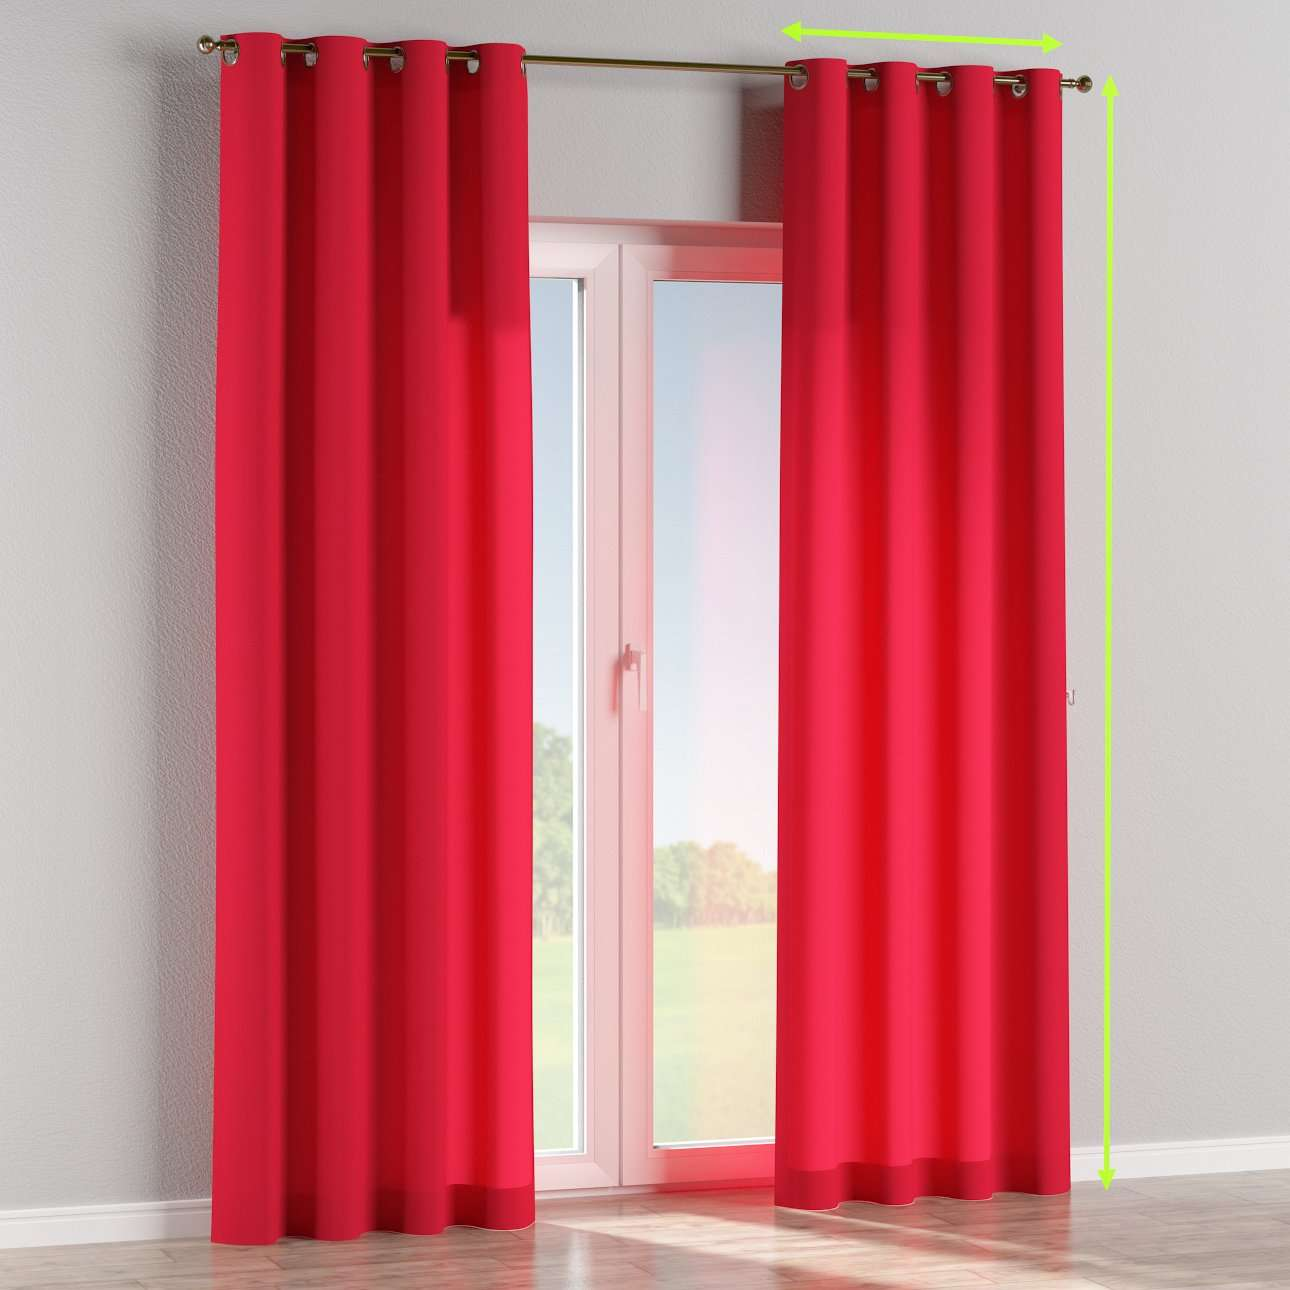 Eyelet curtains in collection Quadro, fabric: 136-19